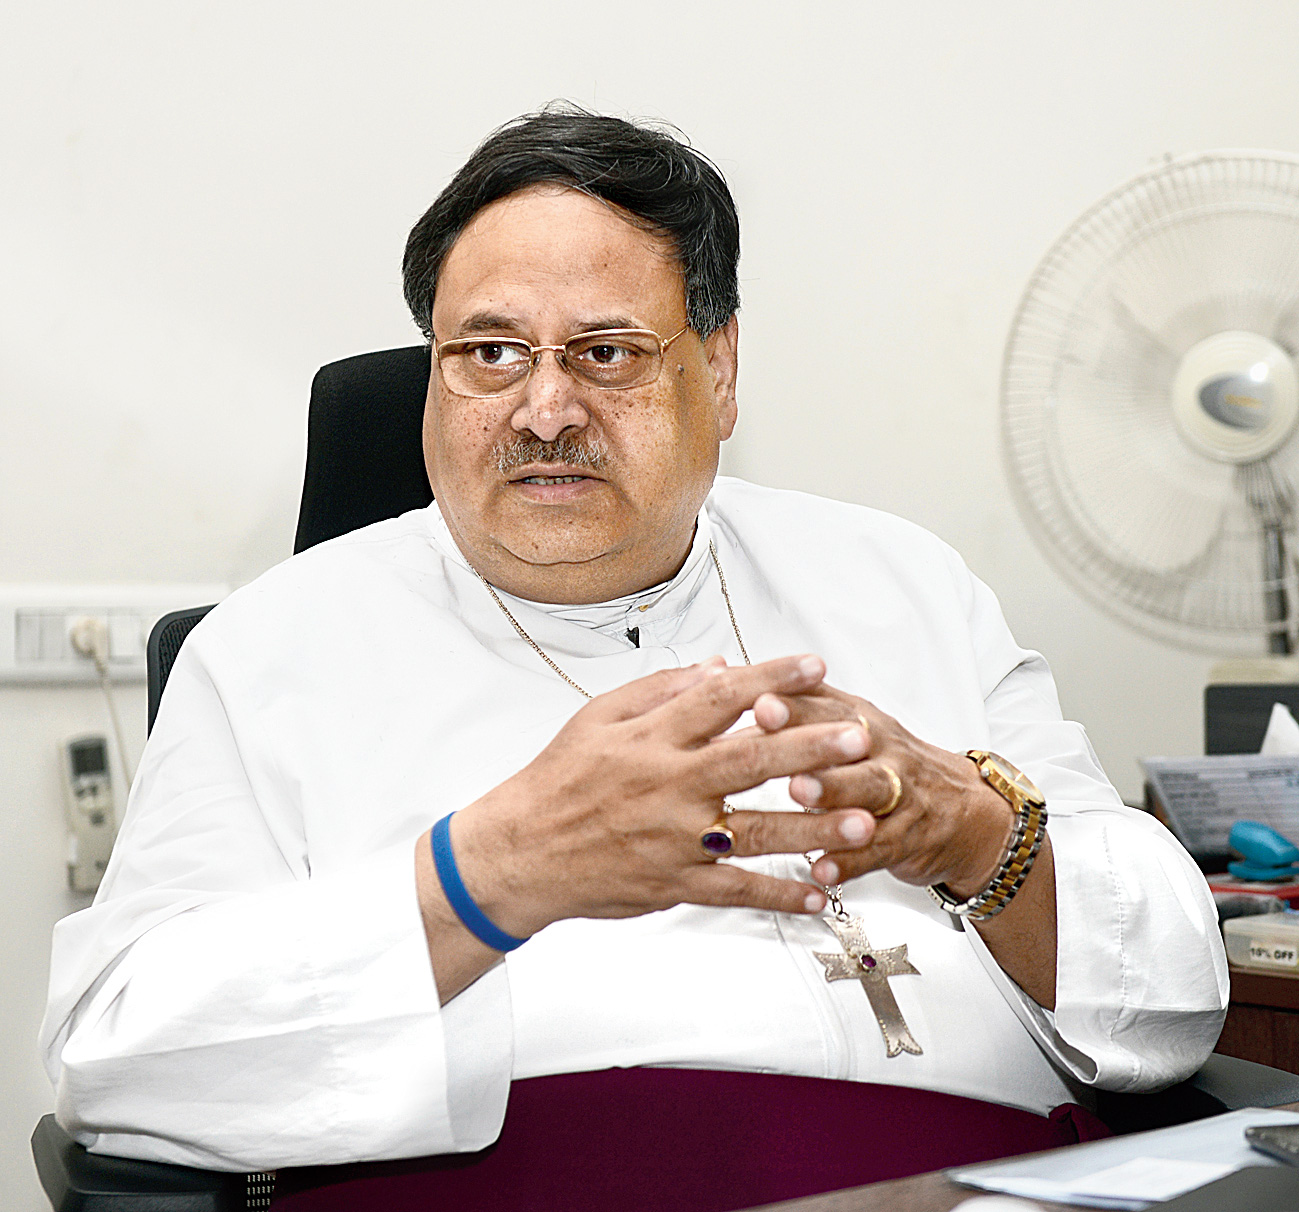 Probal Kanto Dutta, Bishop of the Calcutta diocese of the Church of North India.